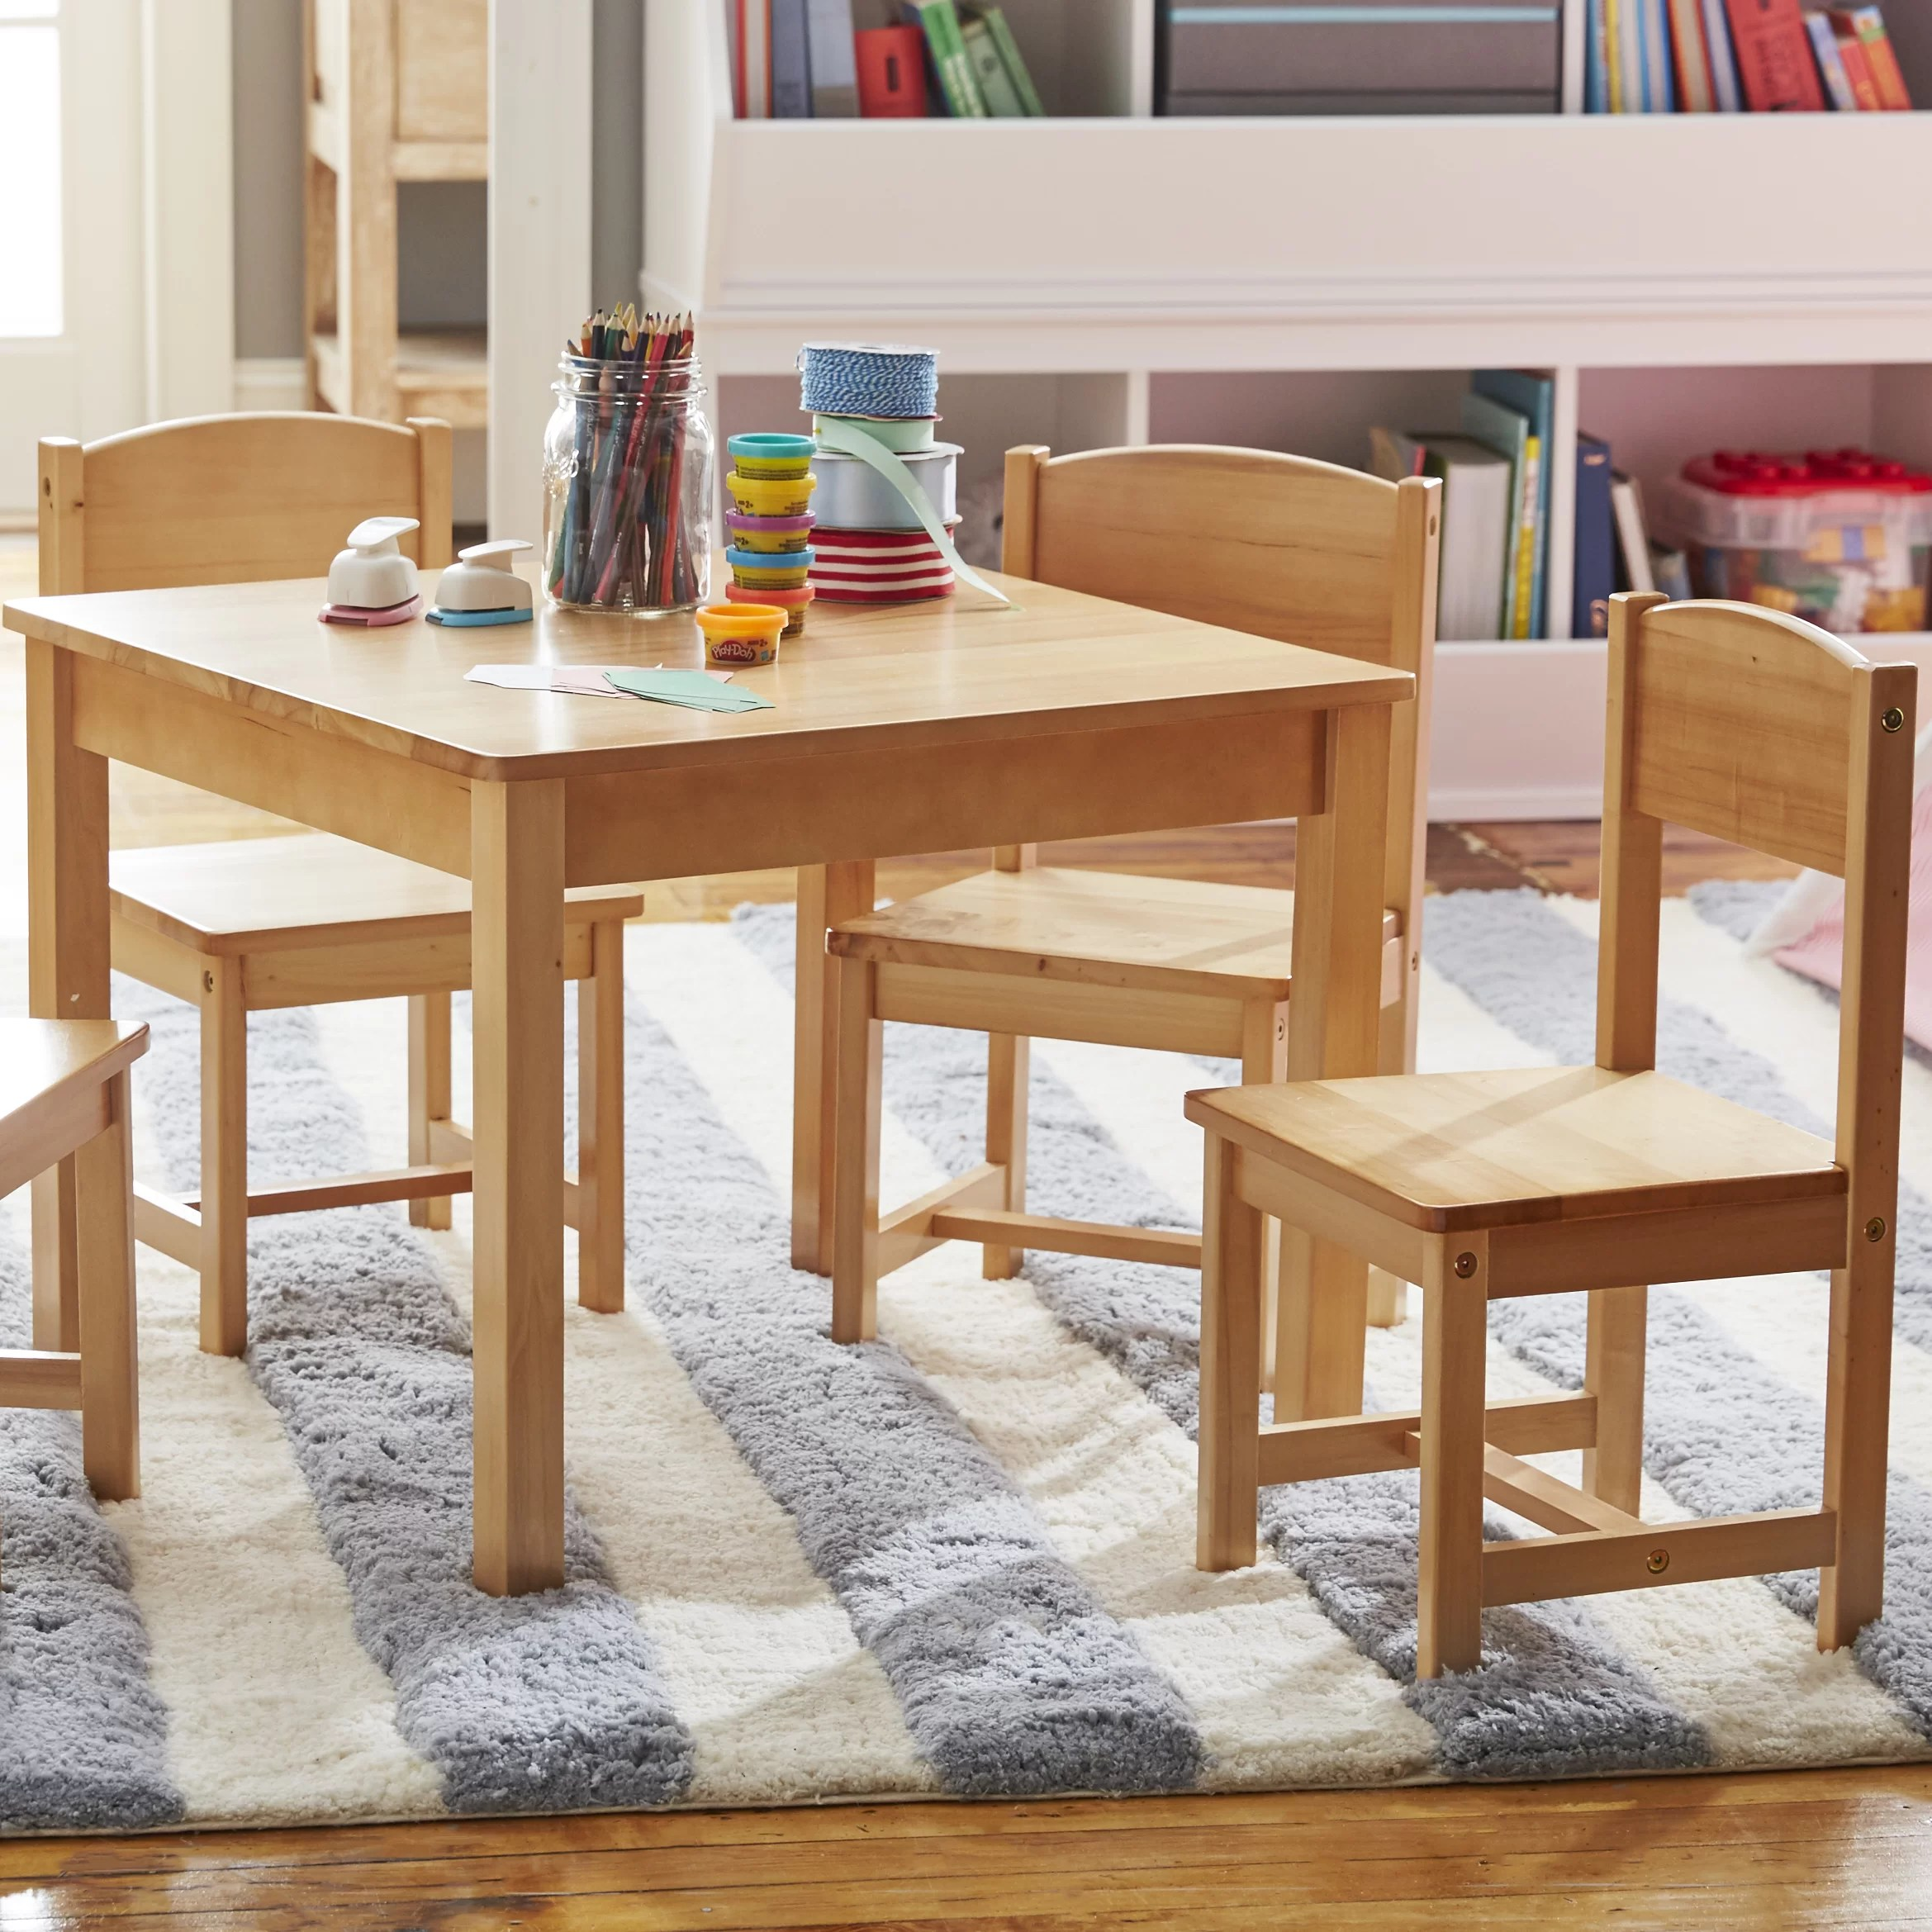 kidkraft table and chairs chair cushion for seniors farmhouse kids 5 piece square set